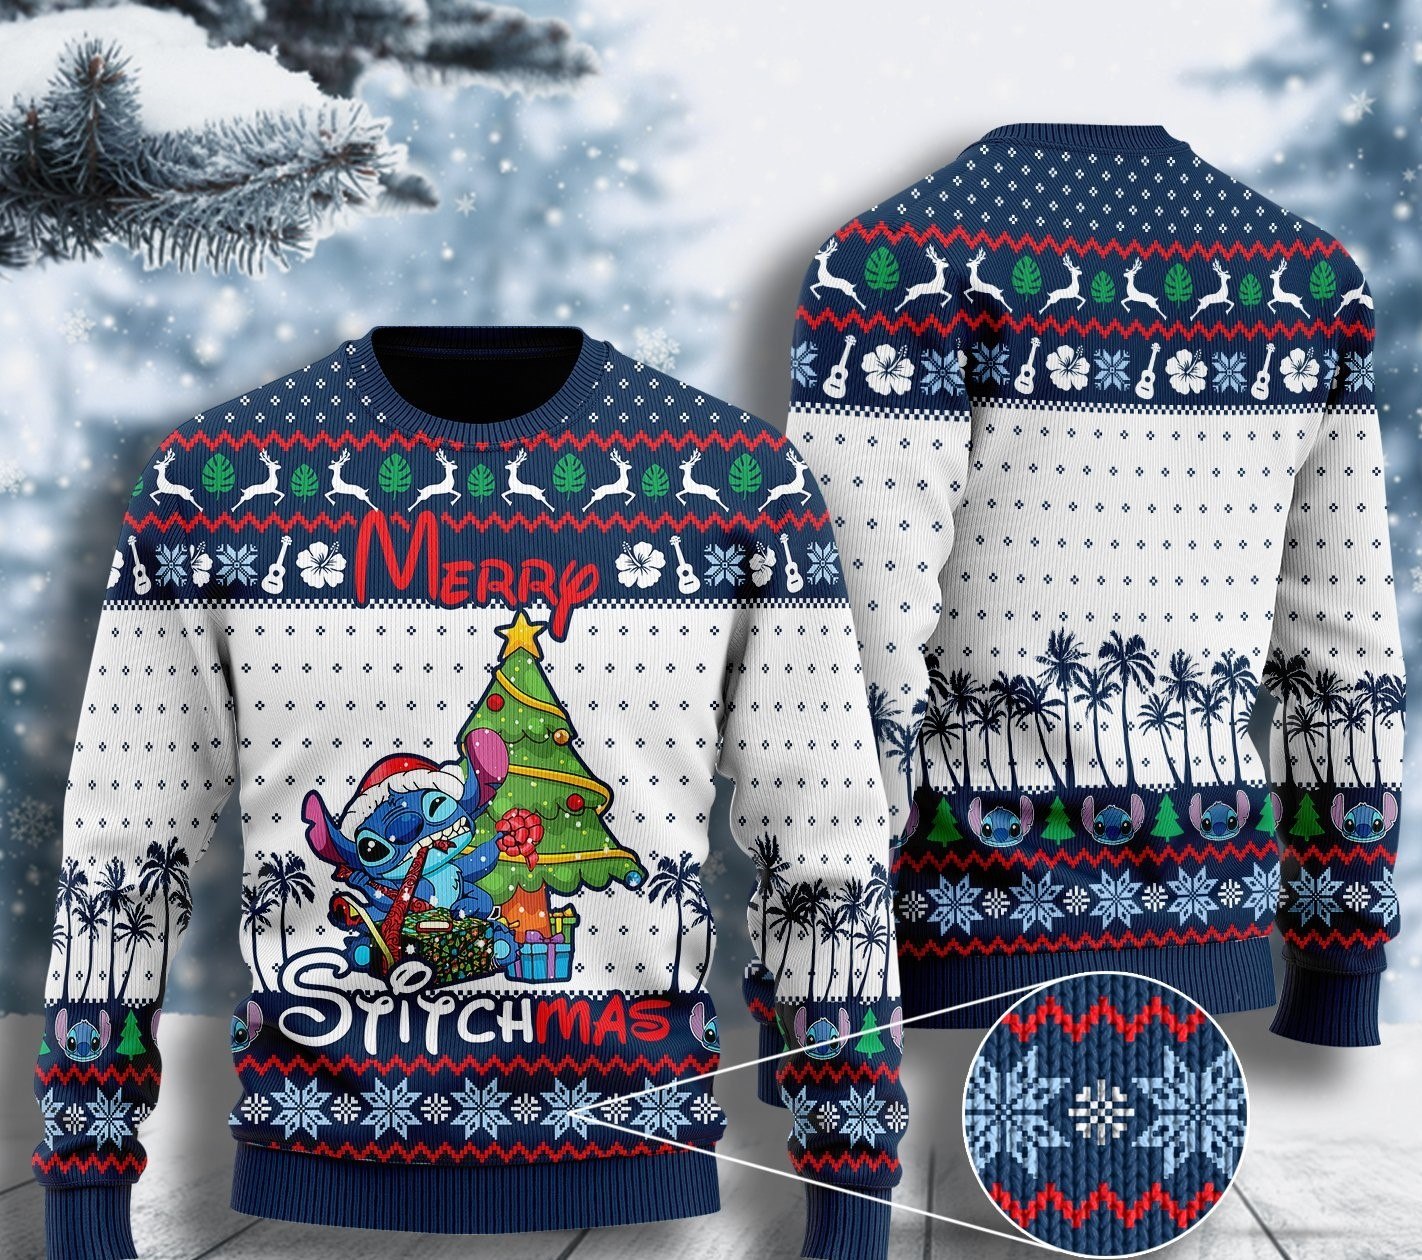 stitch lover merry Stitchmas ugly christmas sweater 2 - Copy (2)